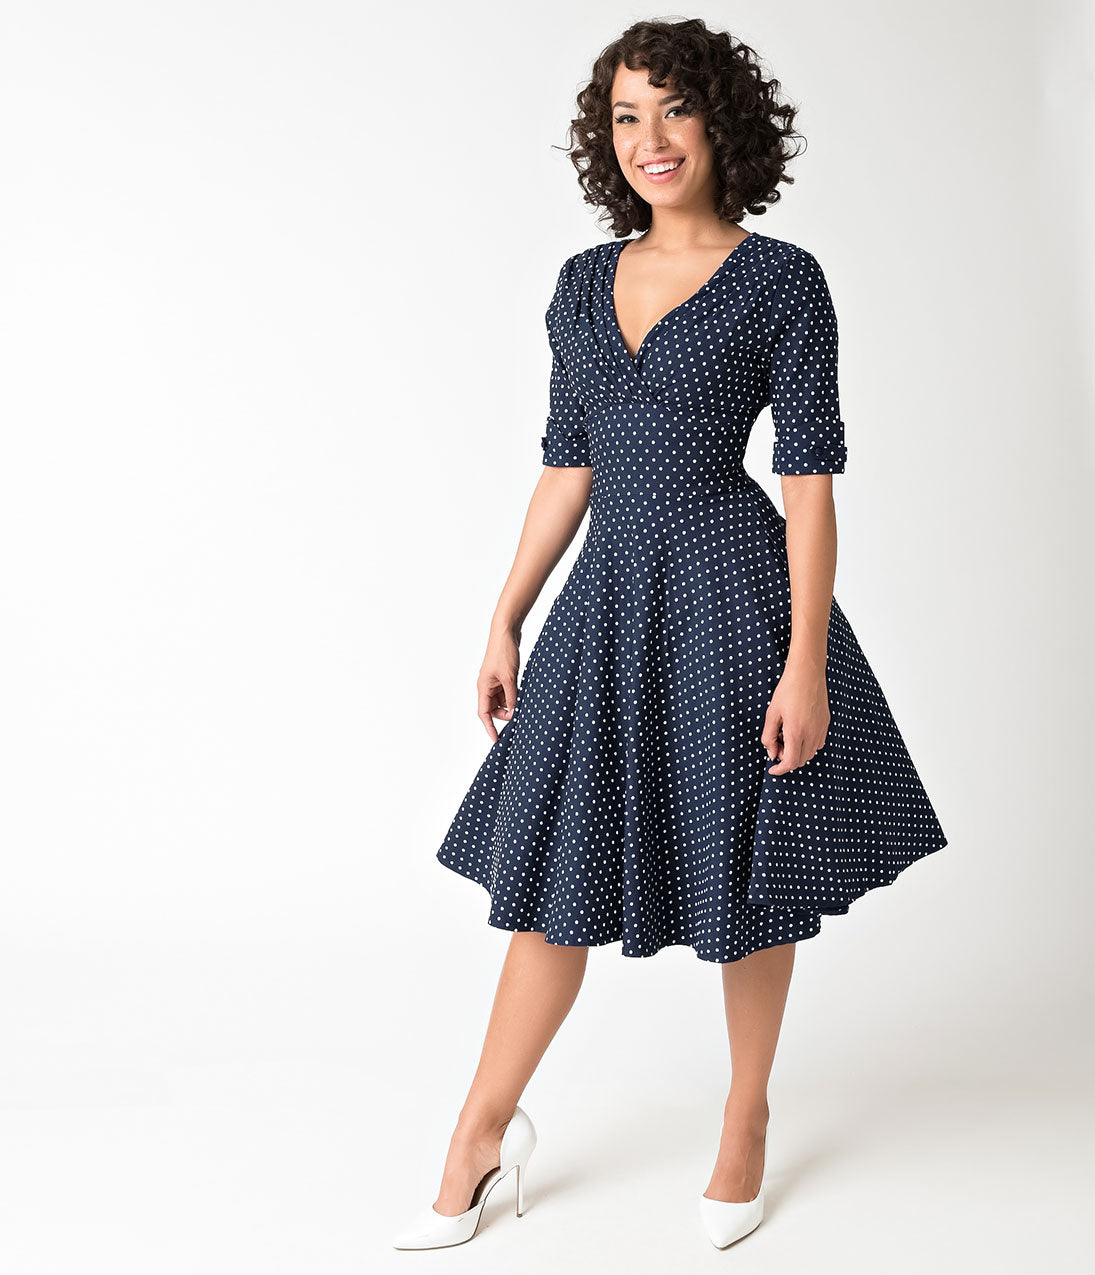 1950s Housewife Dress | 50s Day Dresses 1950S Navy  White Dot Delores Swing Dress With Sleeves $92.00 AT vintagedancer.com